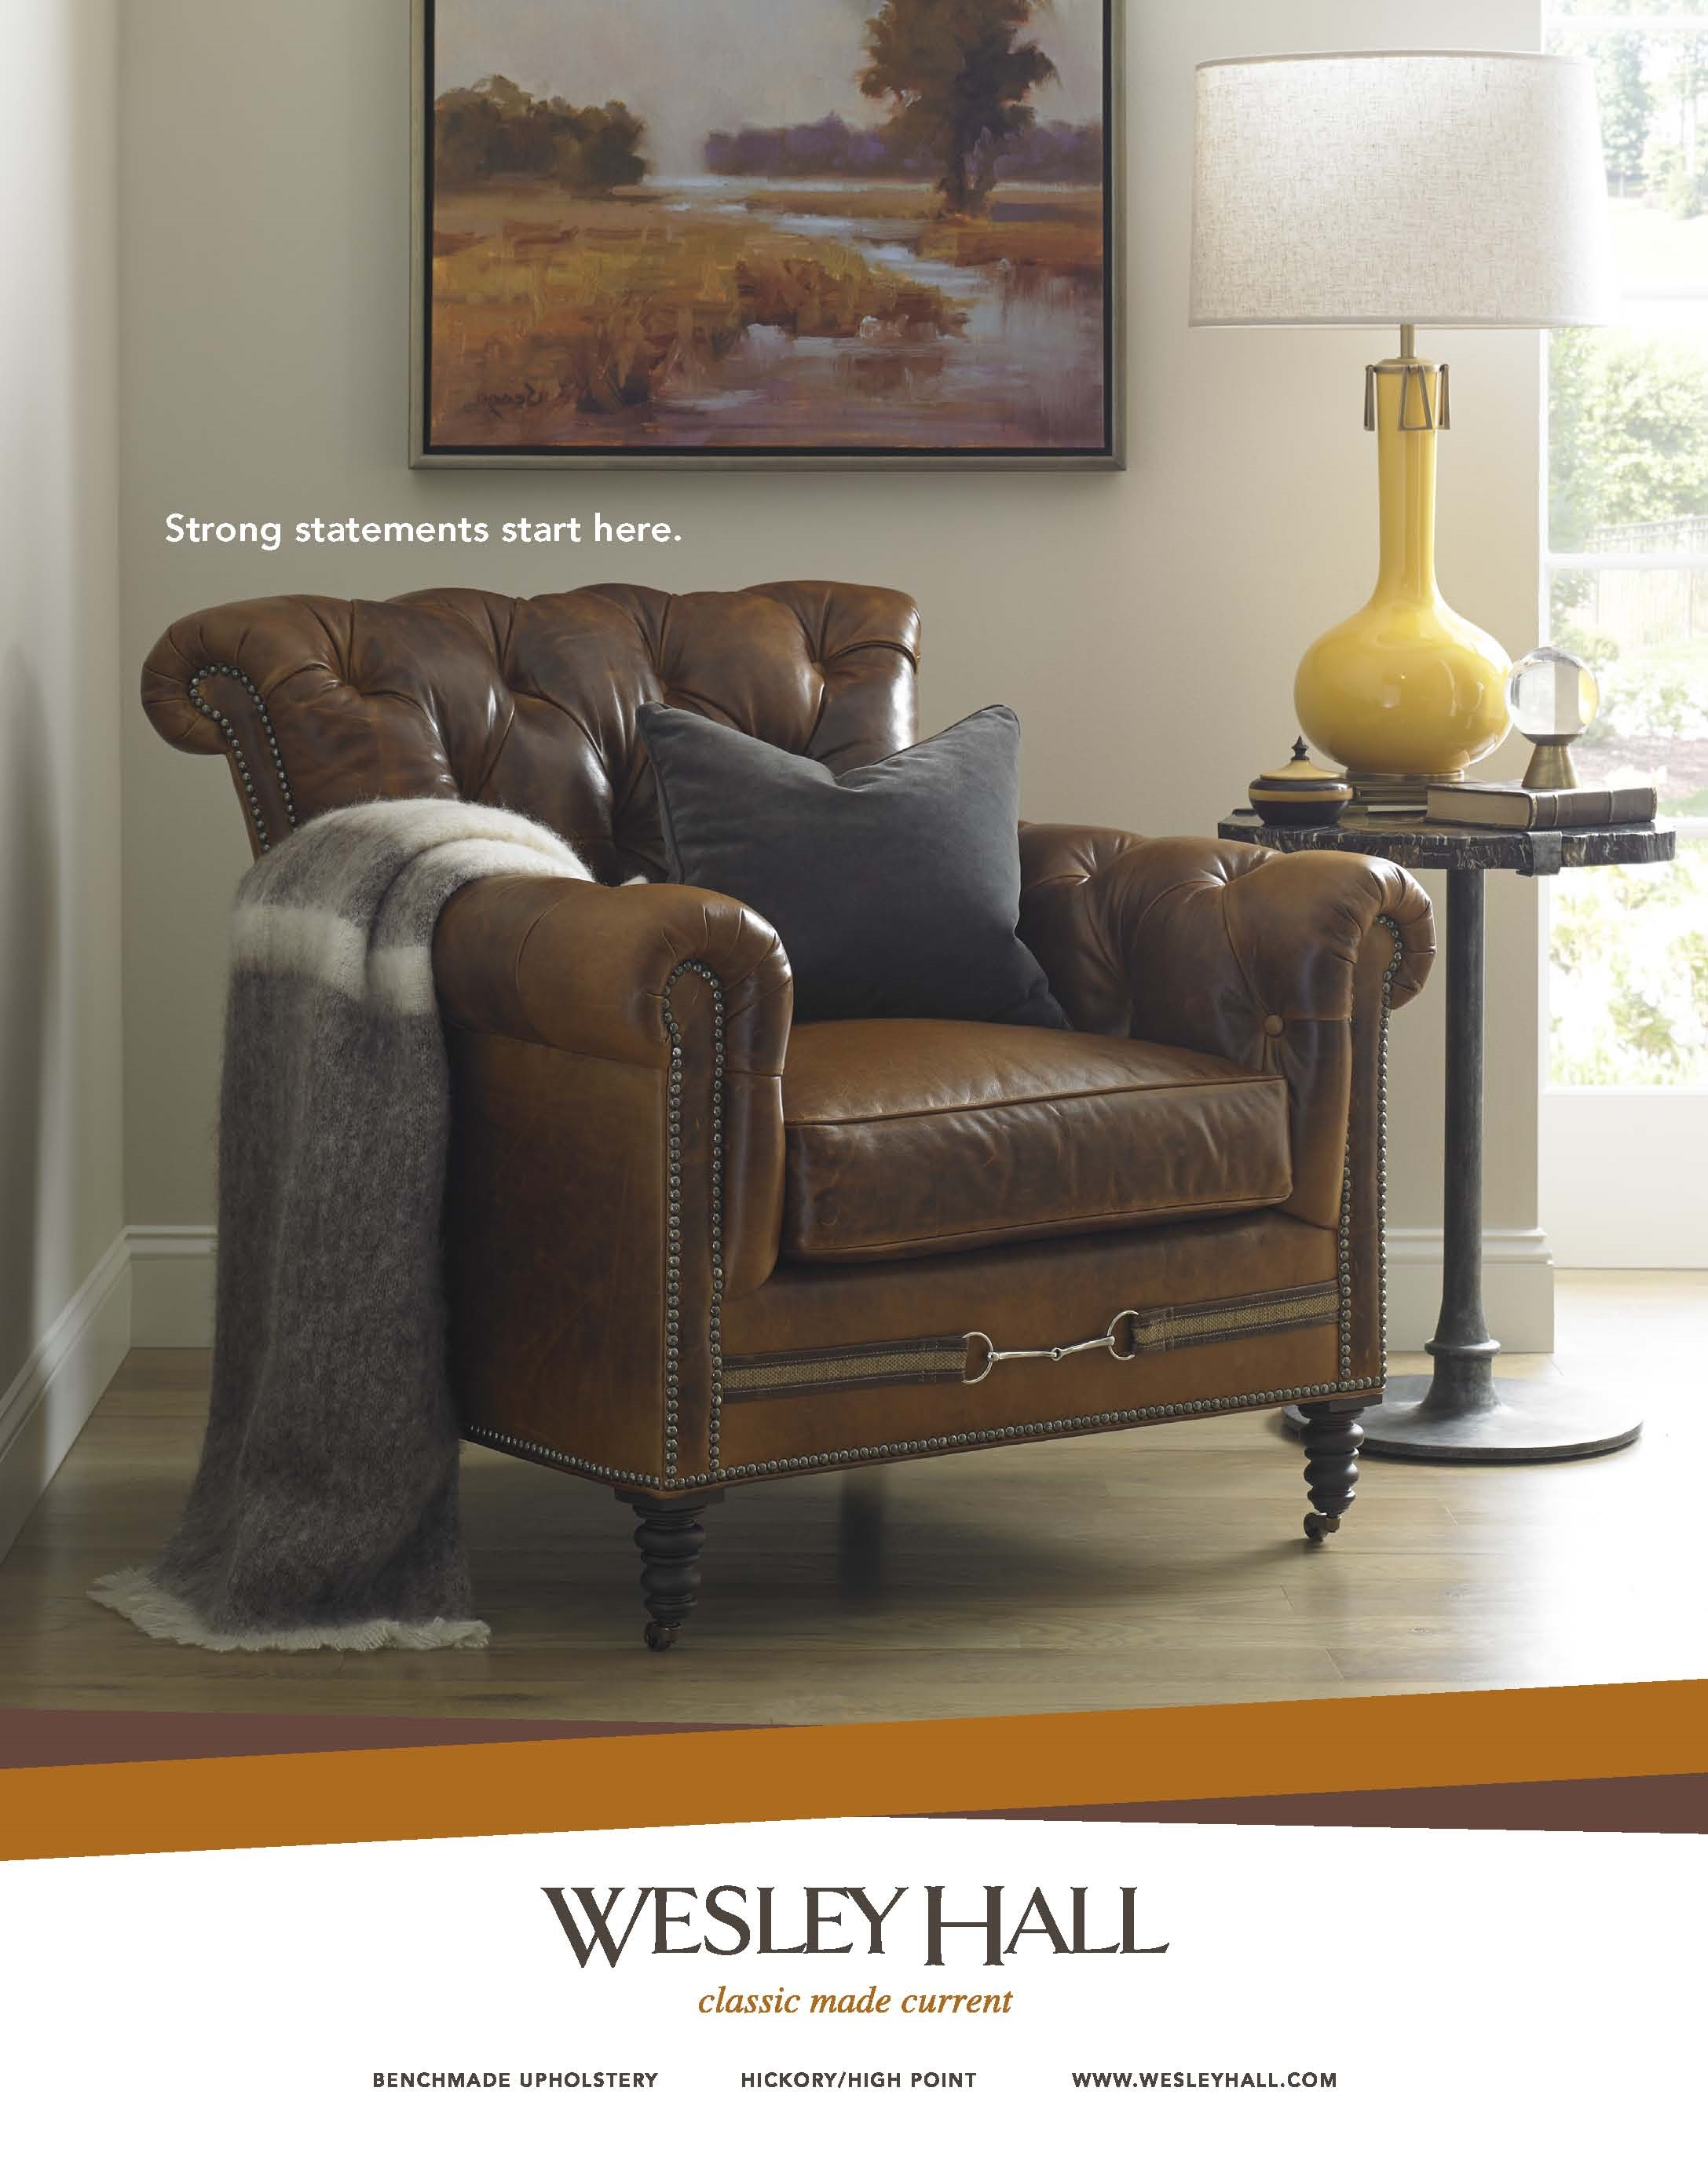 wesley hall sofas family room sofa bed national ads close